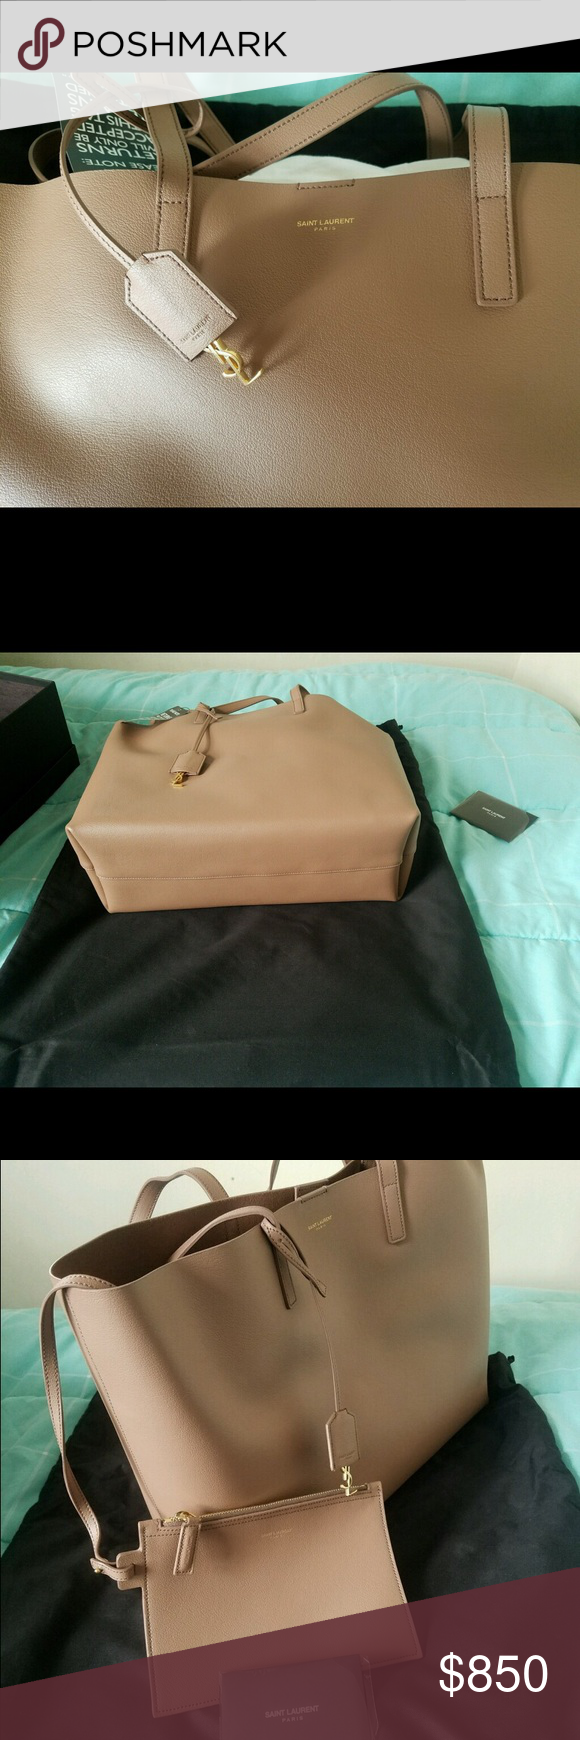 100% nwt Yves Saint Laurent tote New with tags. Never been used. Nude color tote comes with matching coin purse. 14.5 w x 11h x 5d. Bag includes dust bag and authenticity card. Gold tone hardware. Magnetic snap. Made in Italy. Yves Saint Laurent Bags Totes